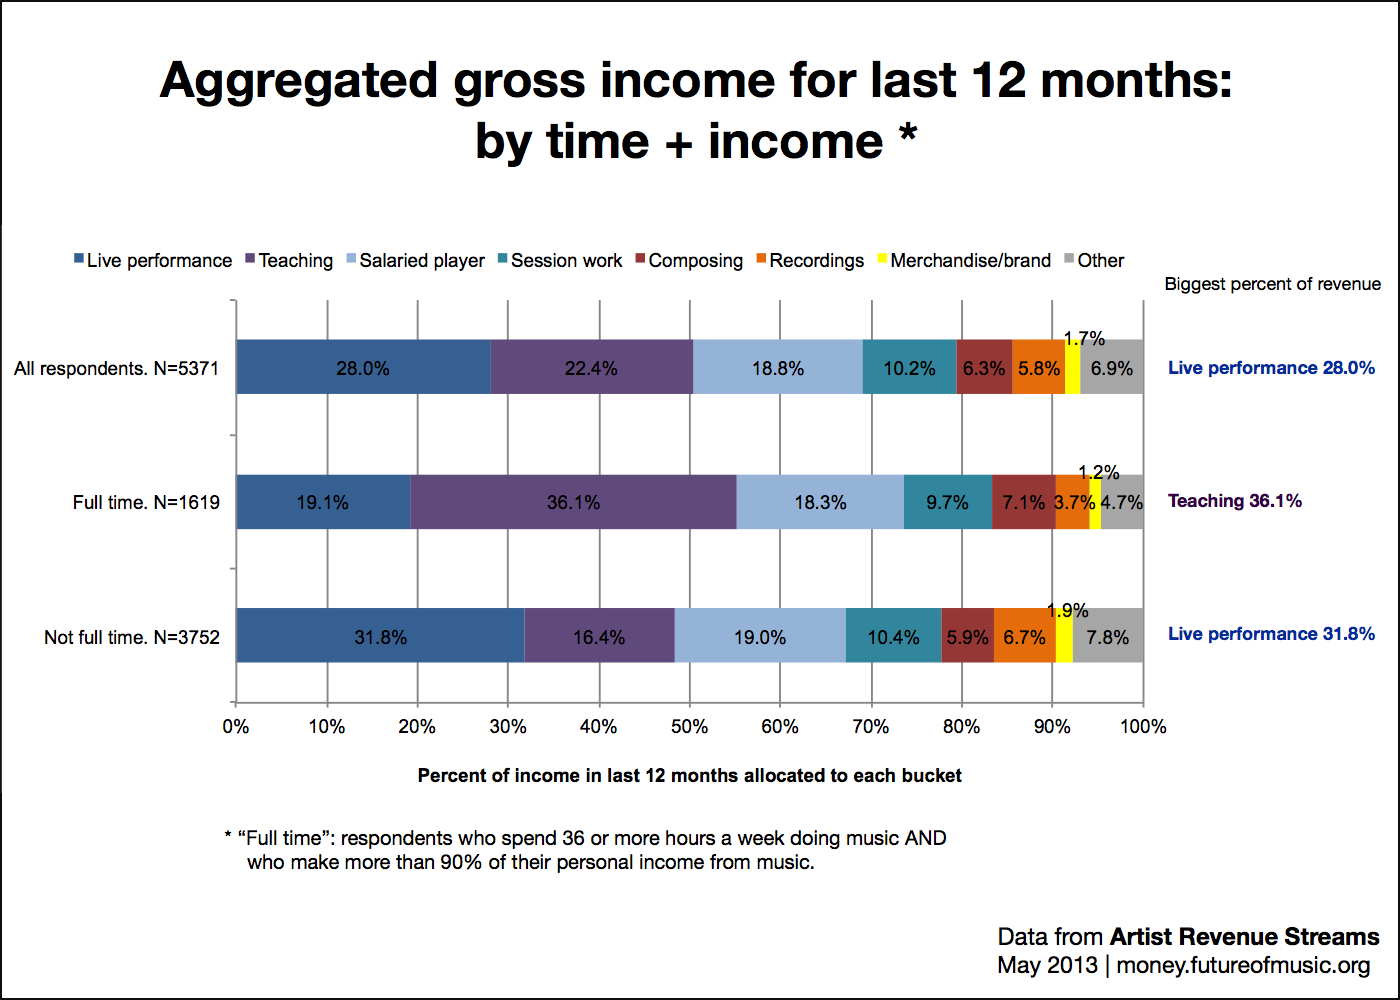 Revenue allocation by time and income